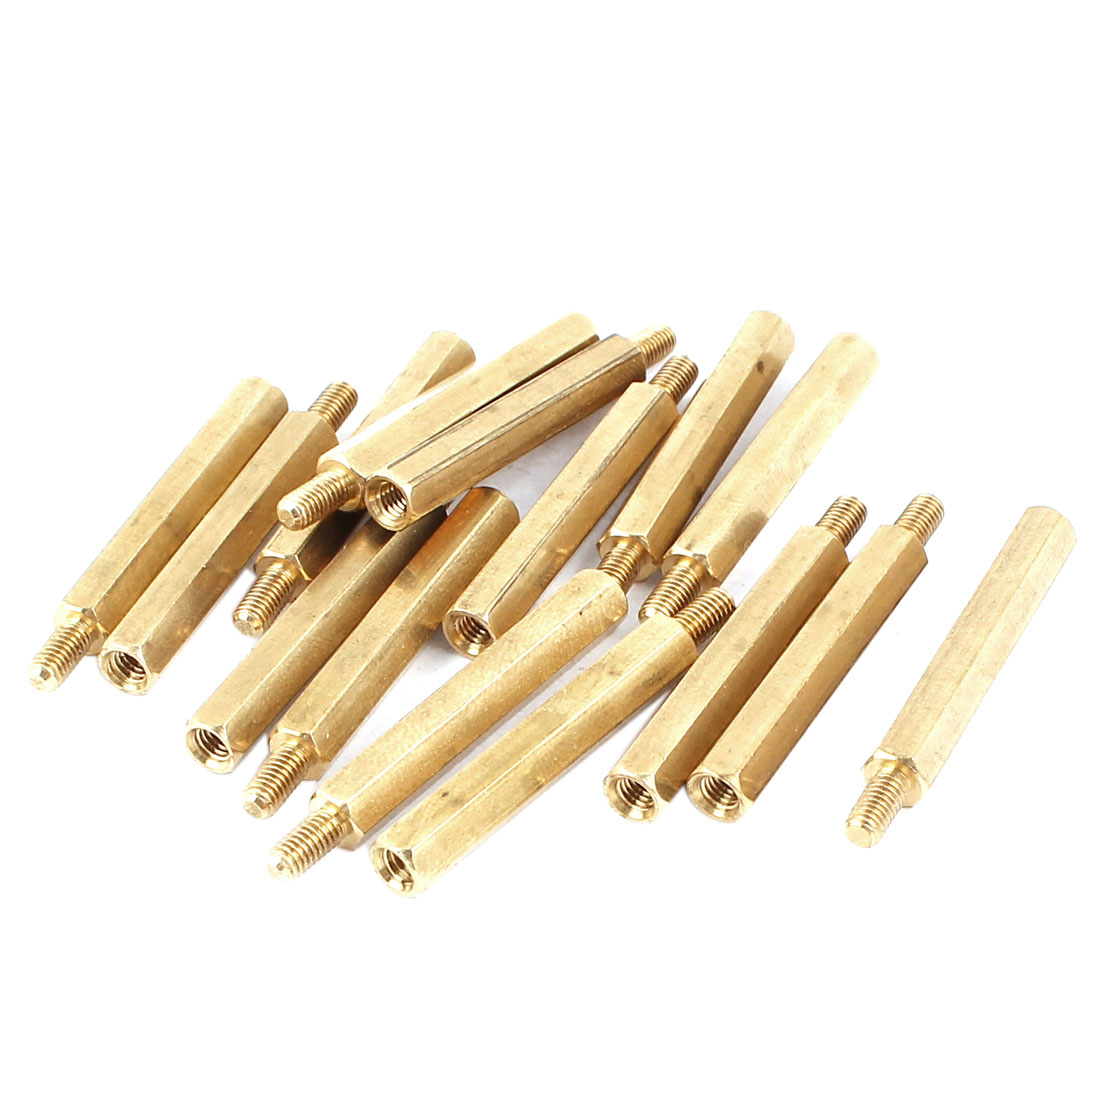 15pcs M3x6mm Male to Female Thread Brass Pillar Standoff Spacer 36mm Long